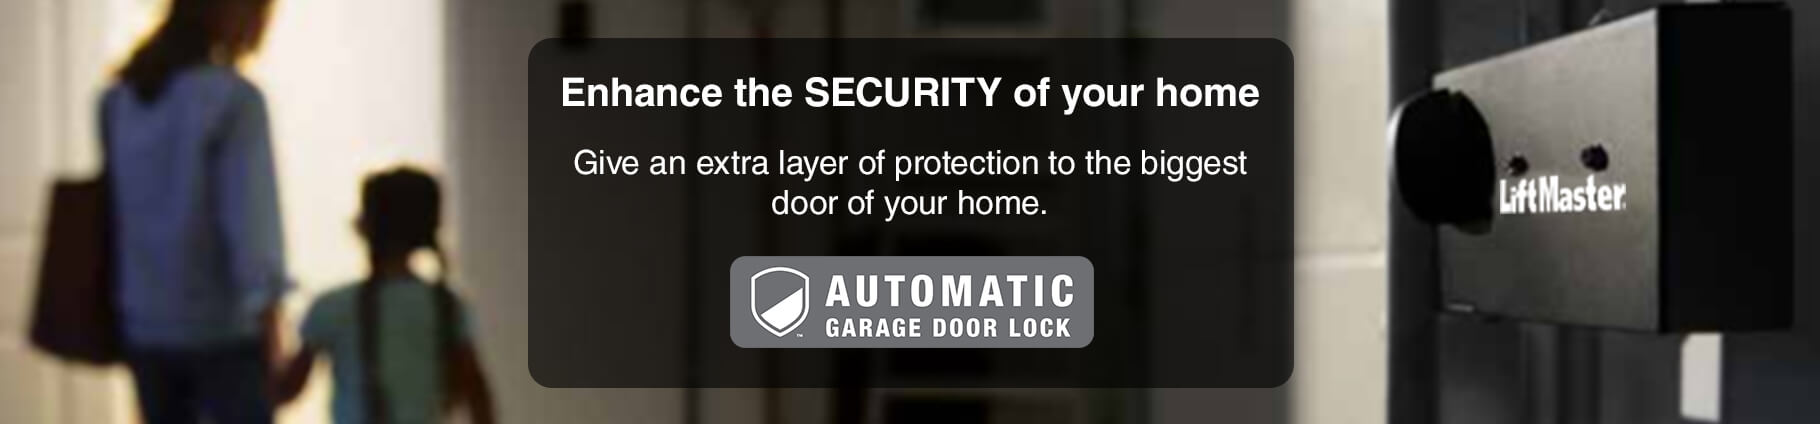 Banner Automatic Garage Door Lock from LiftMaster